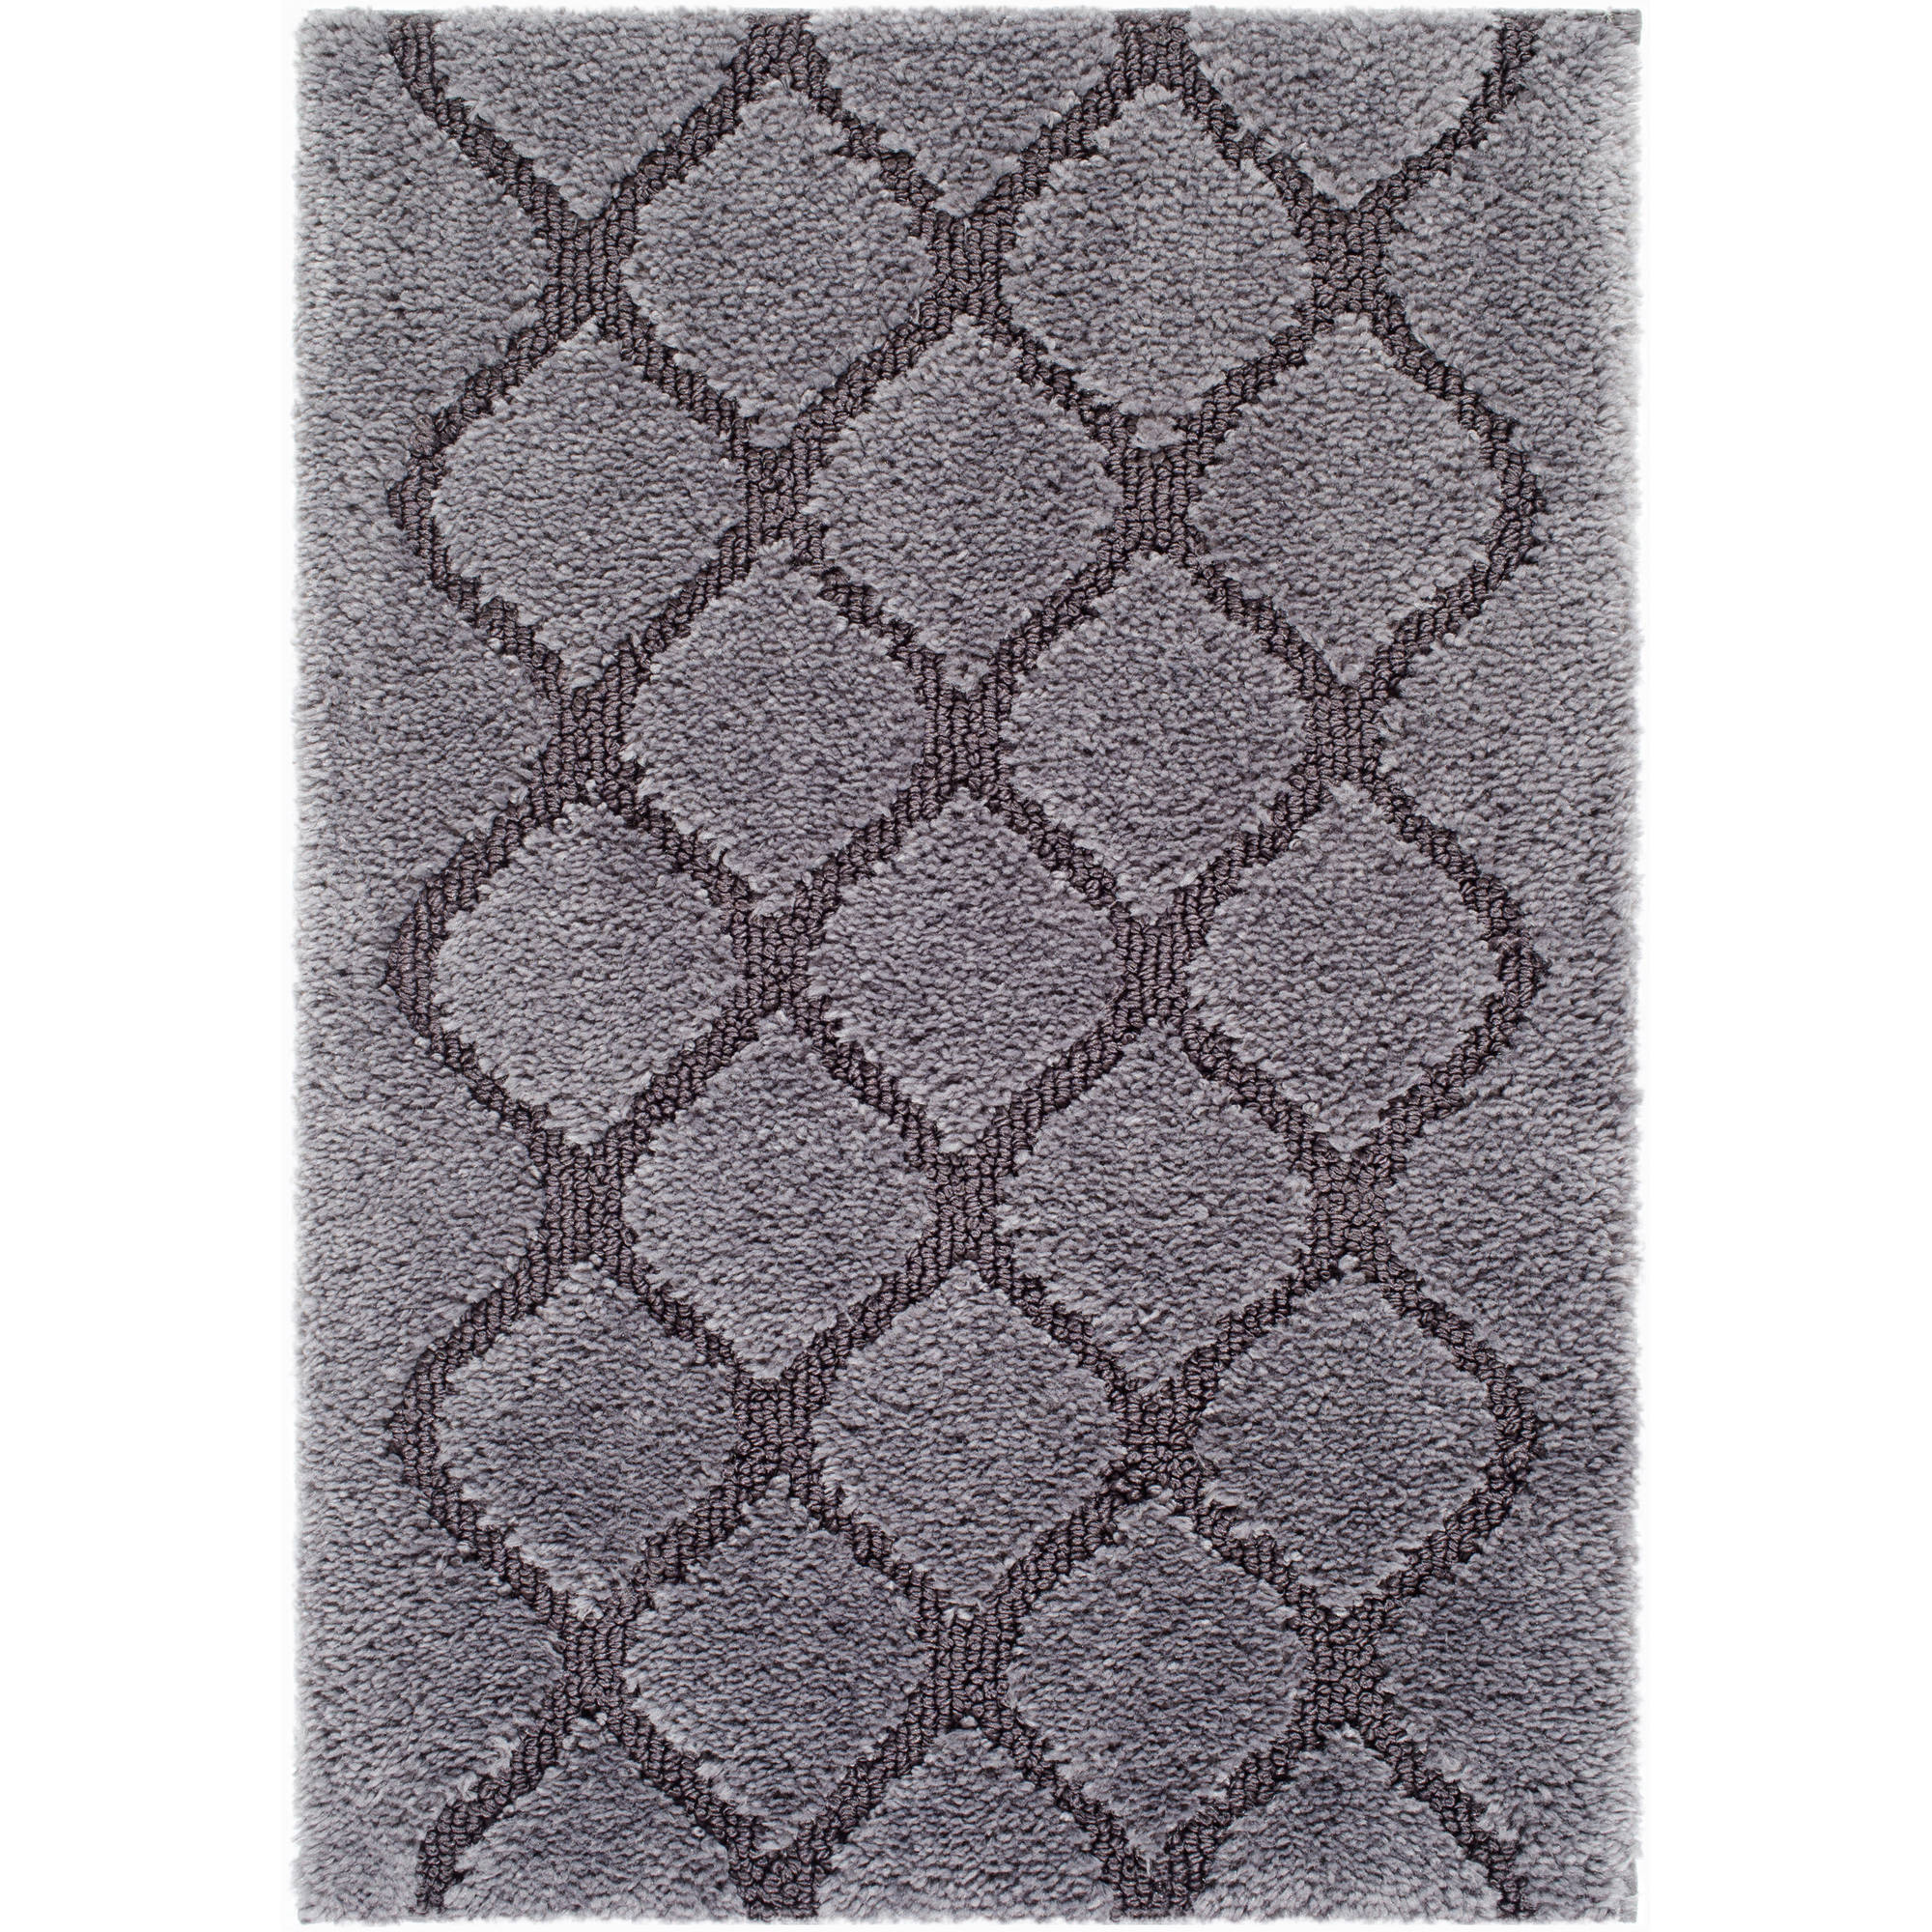 Made Here Fret Pattern Bath Rug Collection